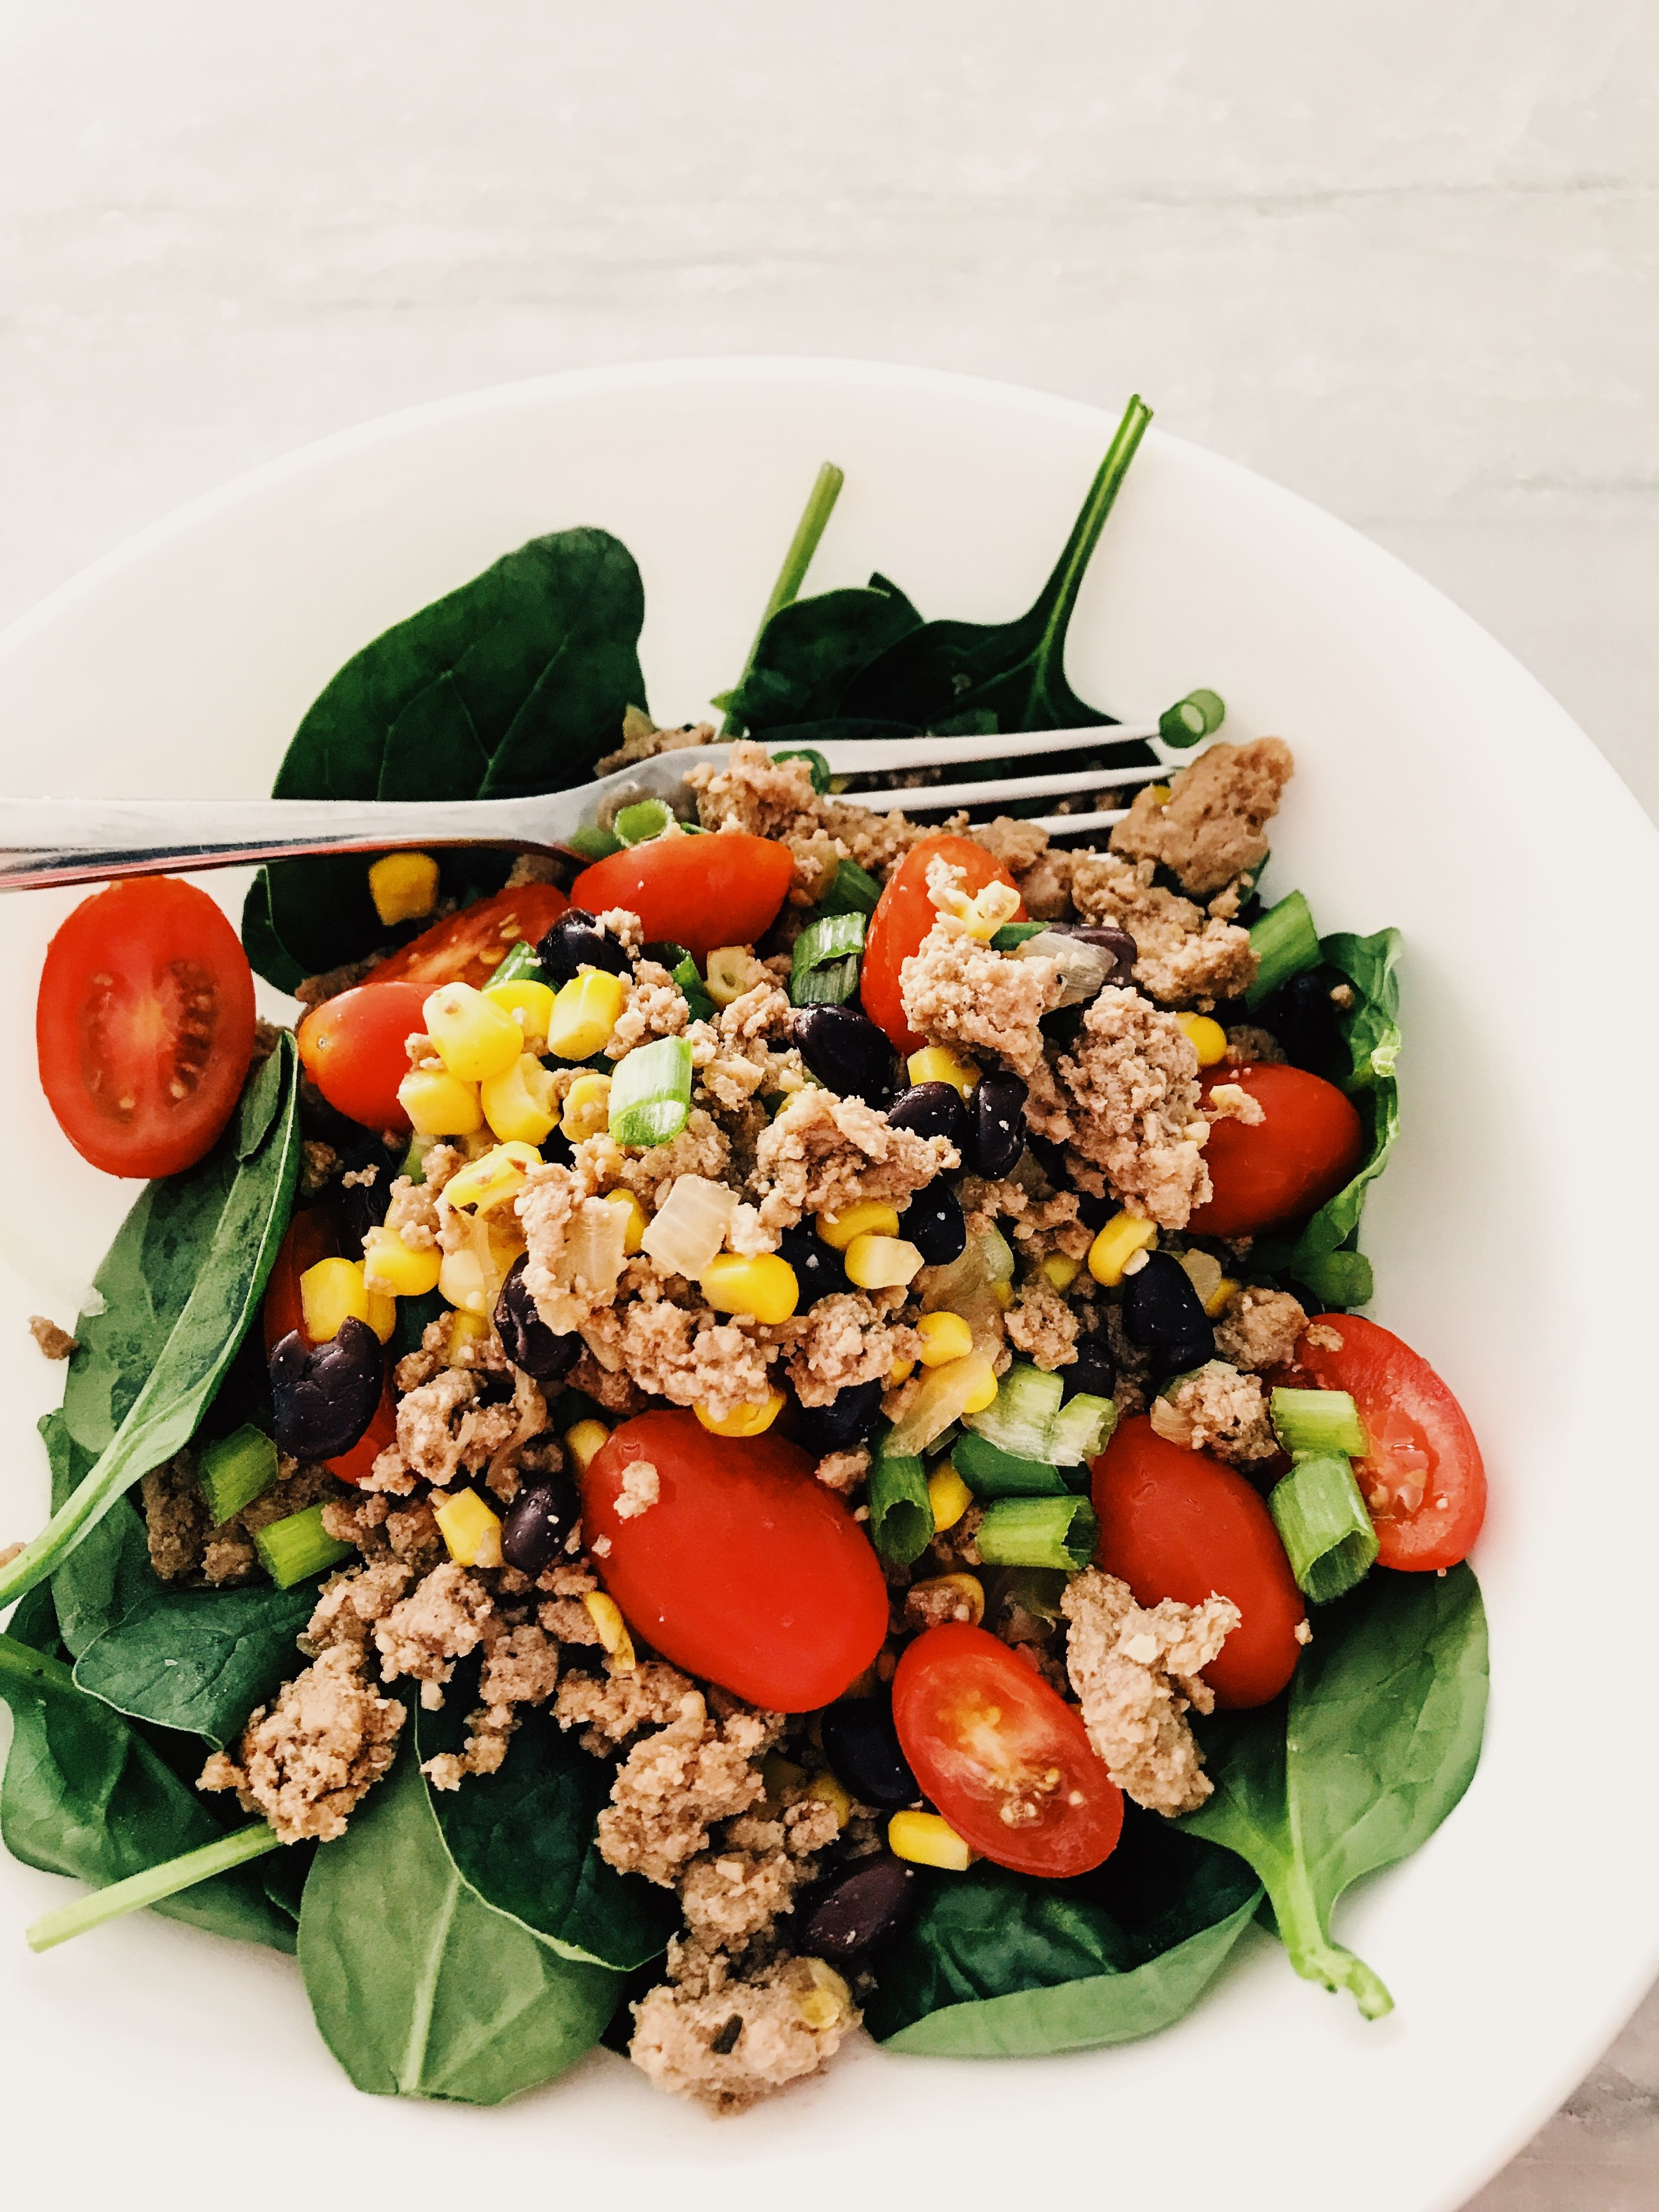 Healthy Meal Preparation. 5 Things You Should Do When Starting A New Routine.